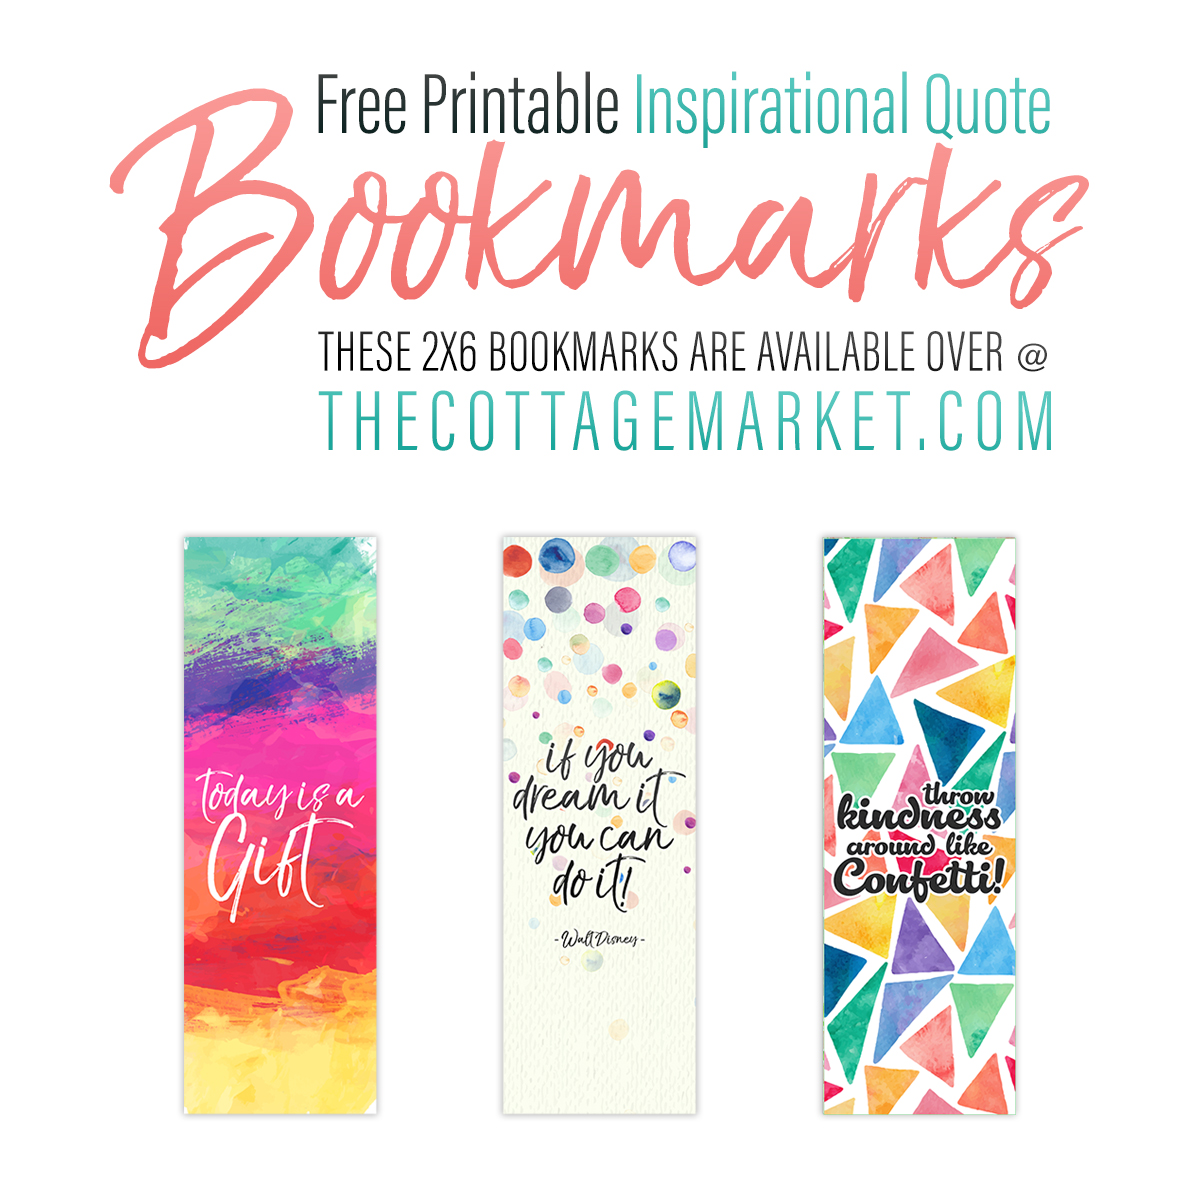 graphic about Free Quote Printable called Cost-free Printable Inspirational Estimate Bookmarks - The Cottage